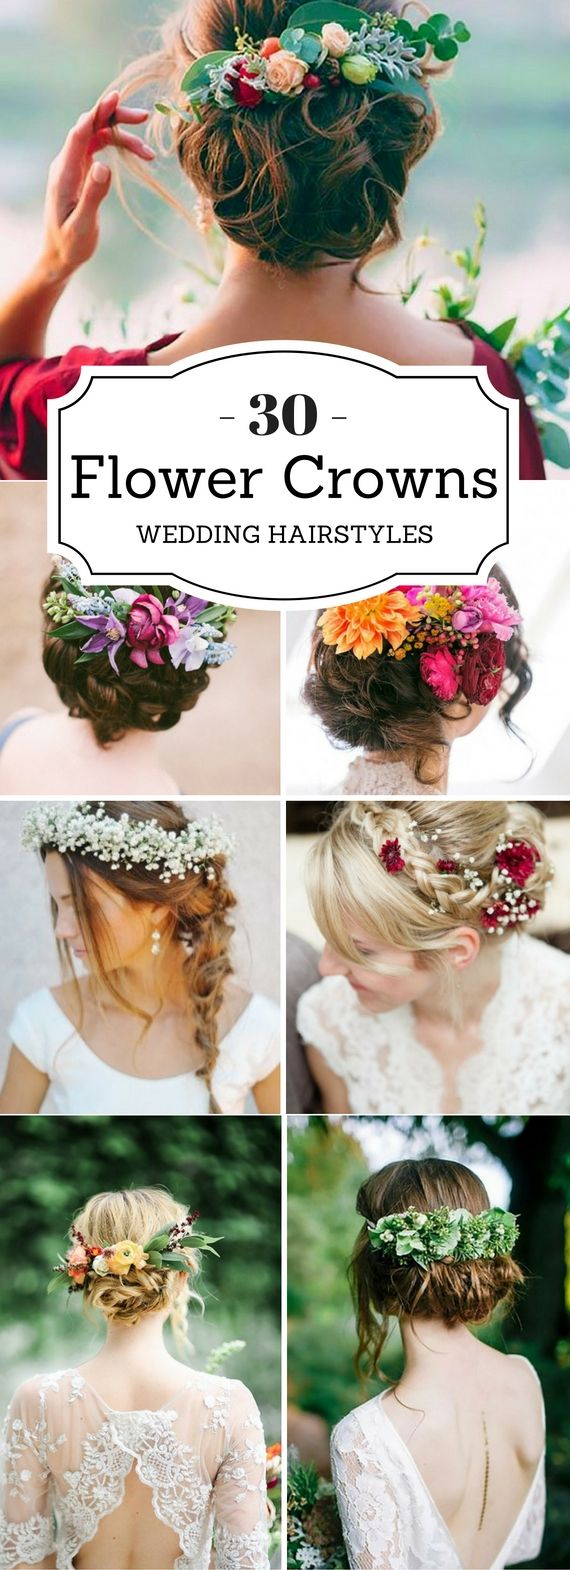 These wedding hairstyles with flower crowns are simply the best so